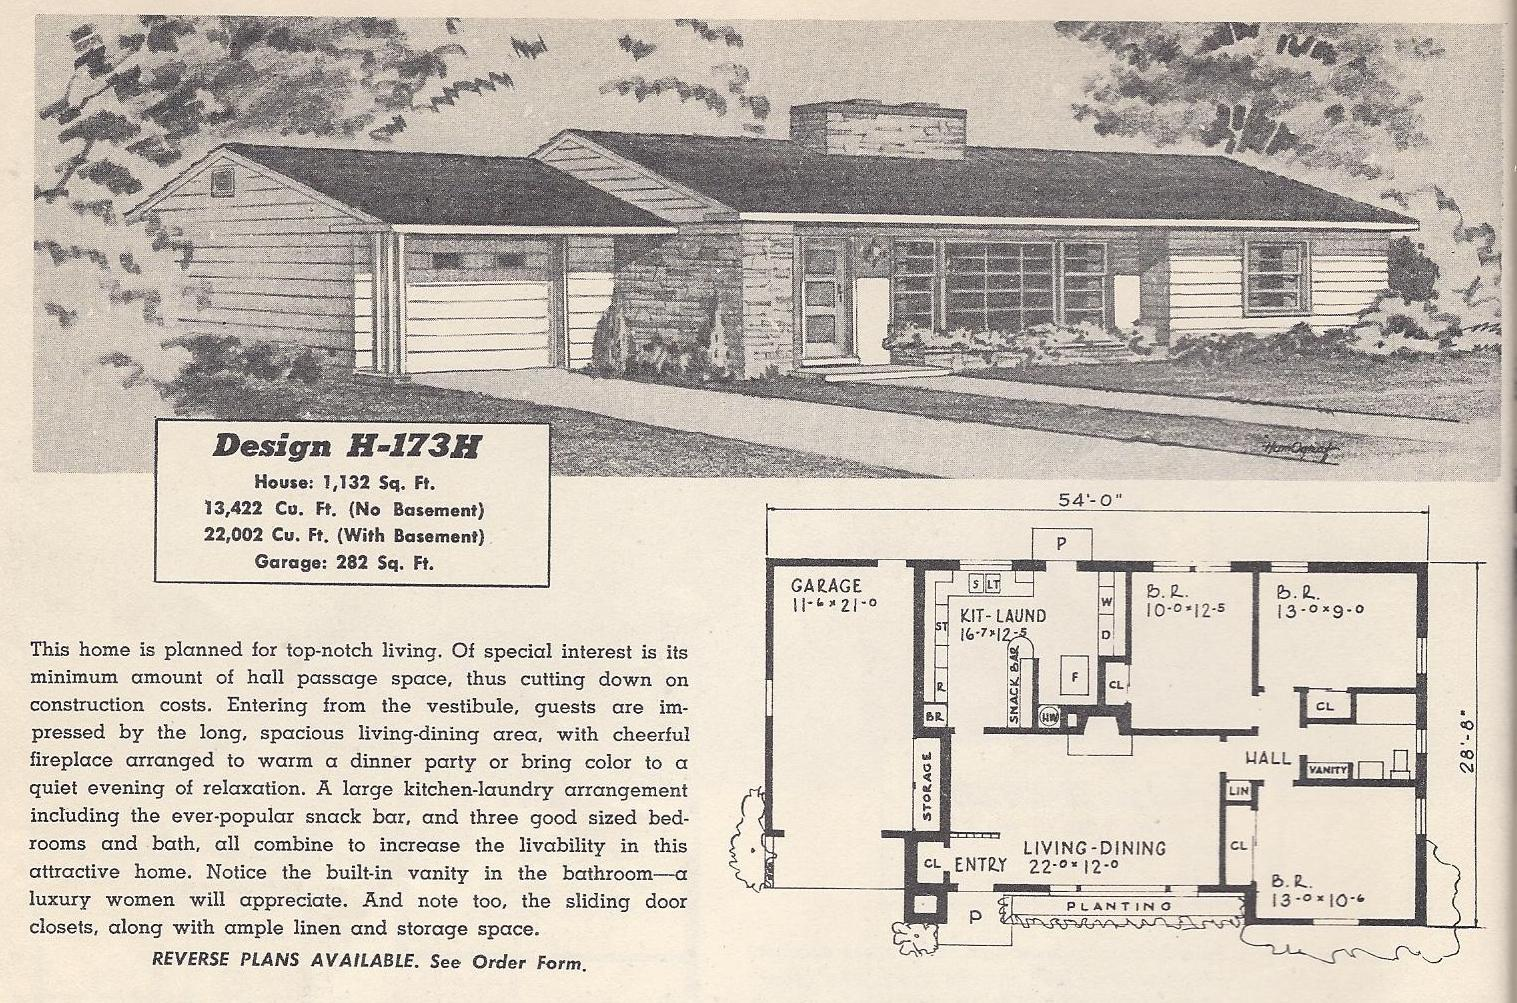 Vintage house plans 173h antique alter ego 1960s ranch style house plans